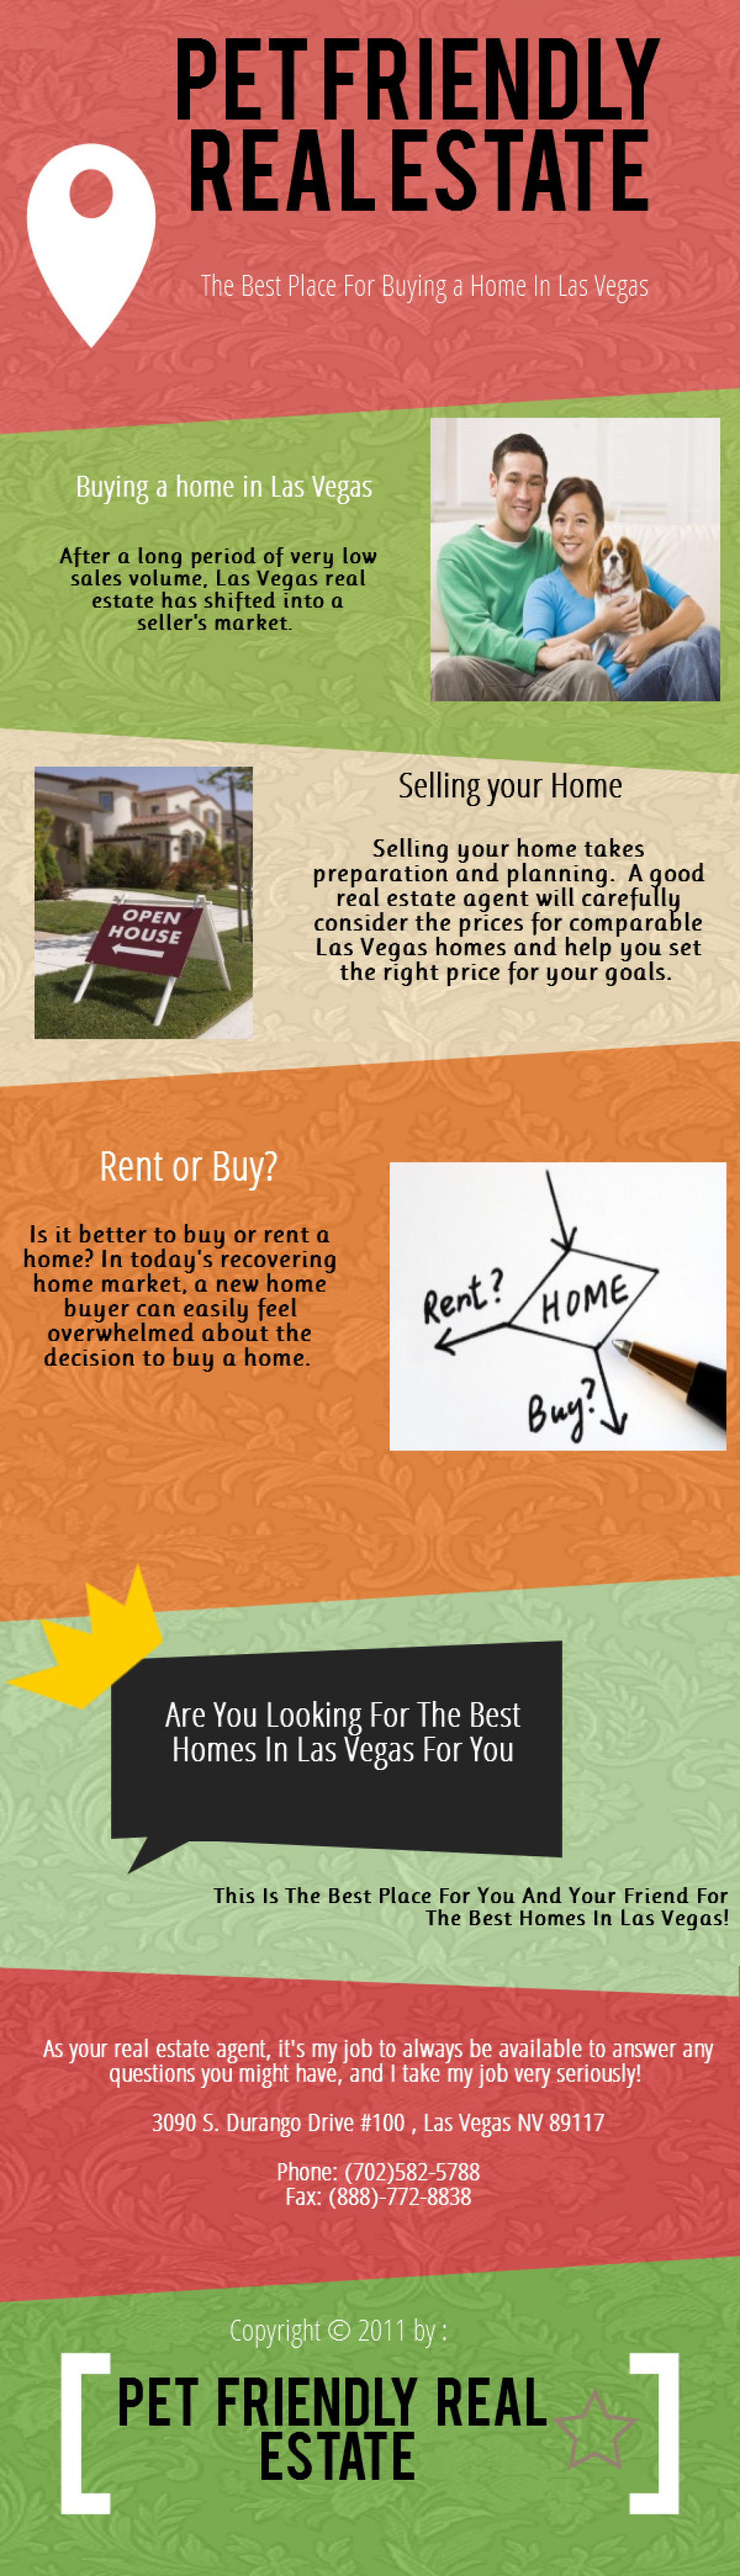 Homes For Sale In Las Vegas Infographic